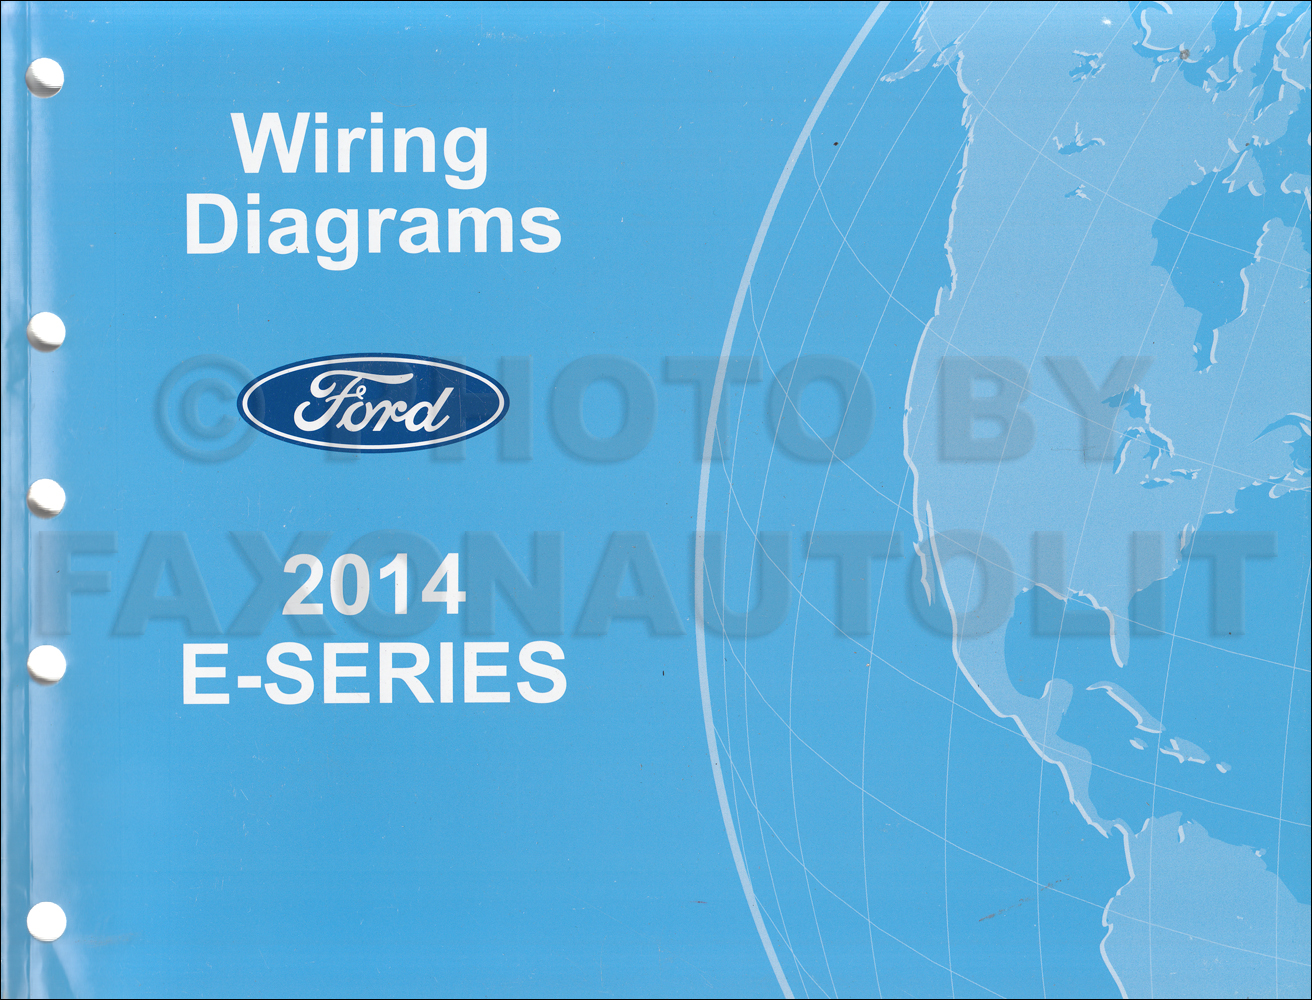 2000 Ford E 450 Wiring Diagram E350 Super Duty Diagrams Library2014 Econoline Manual Original